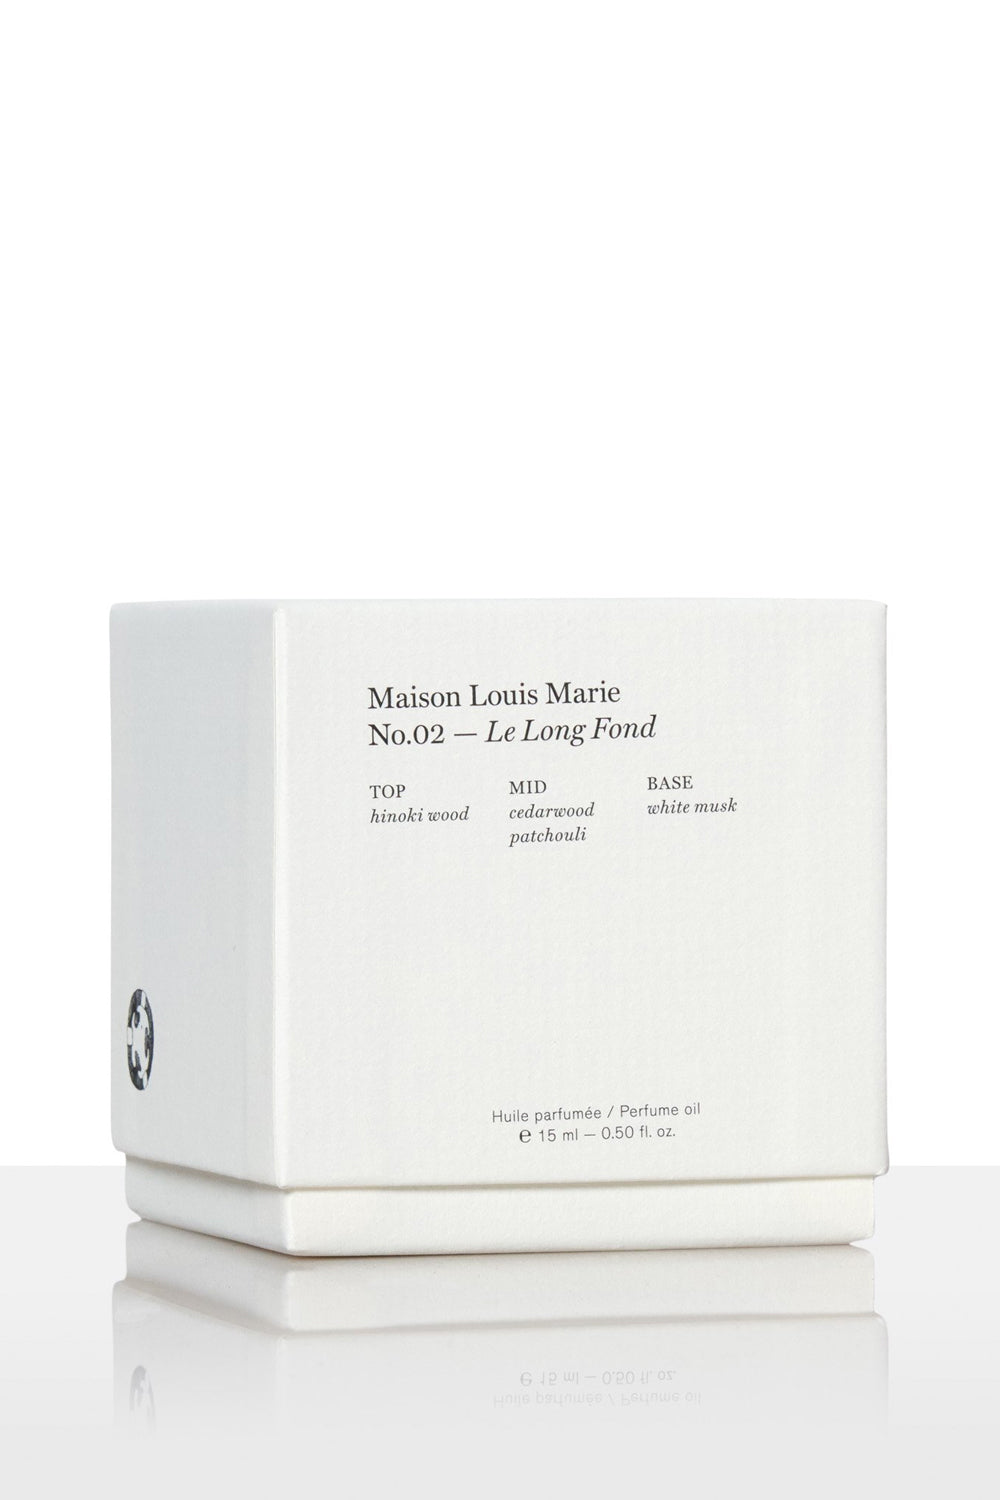 Maison Louis Marie No. 2 Le Long Fond Perfume Oil - Vert & Vogue